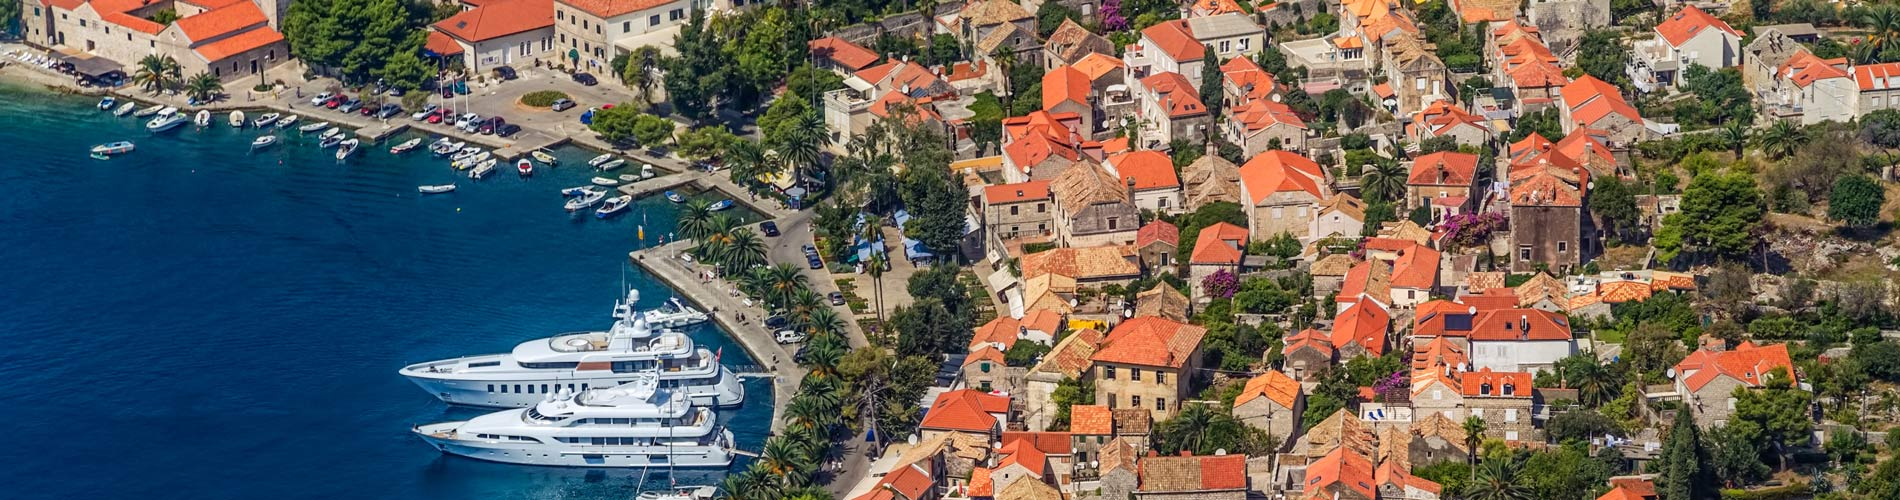 Helicopter aerial shot of Cavtat2.jpg